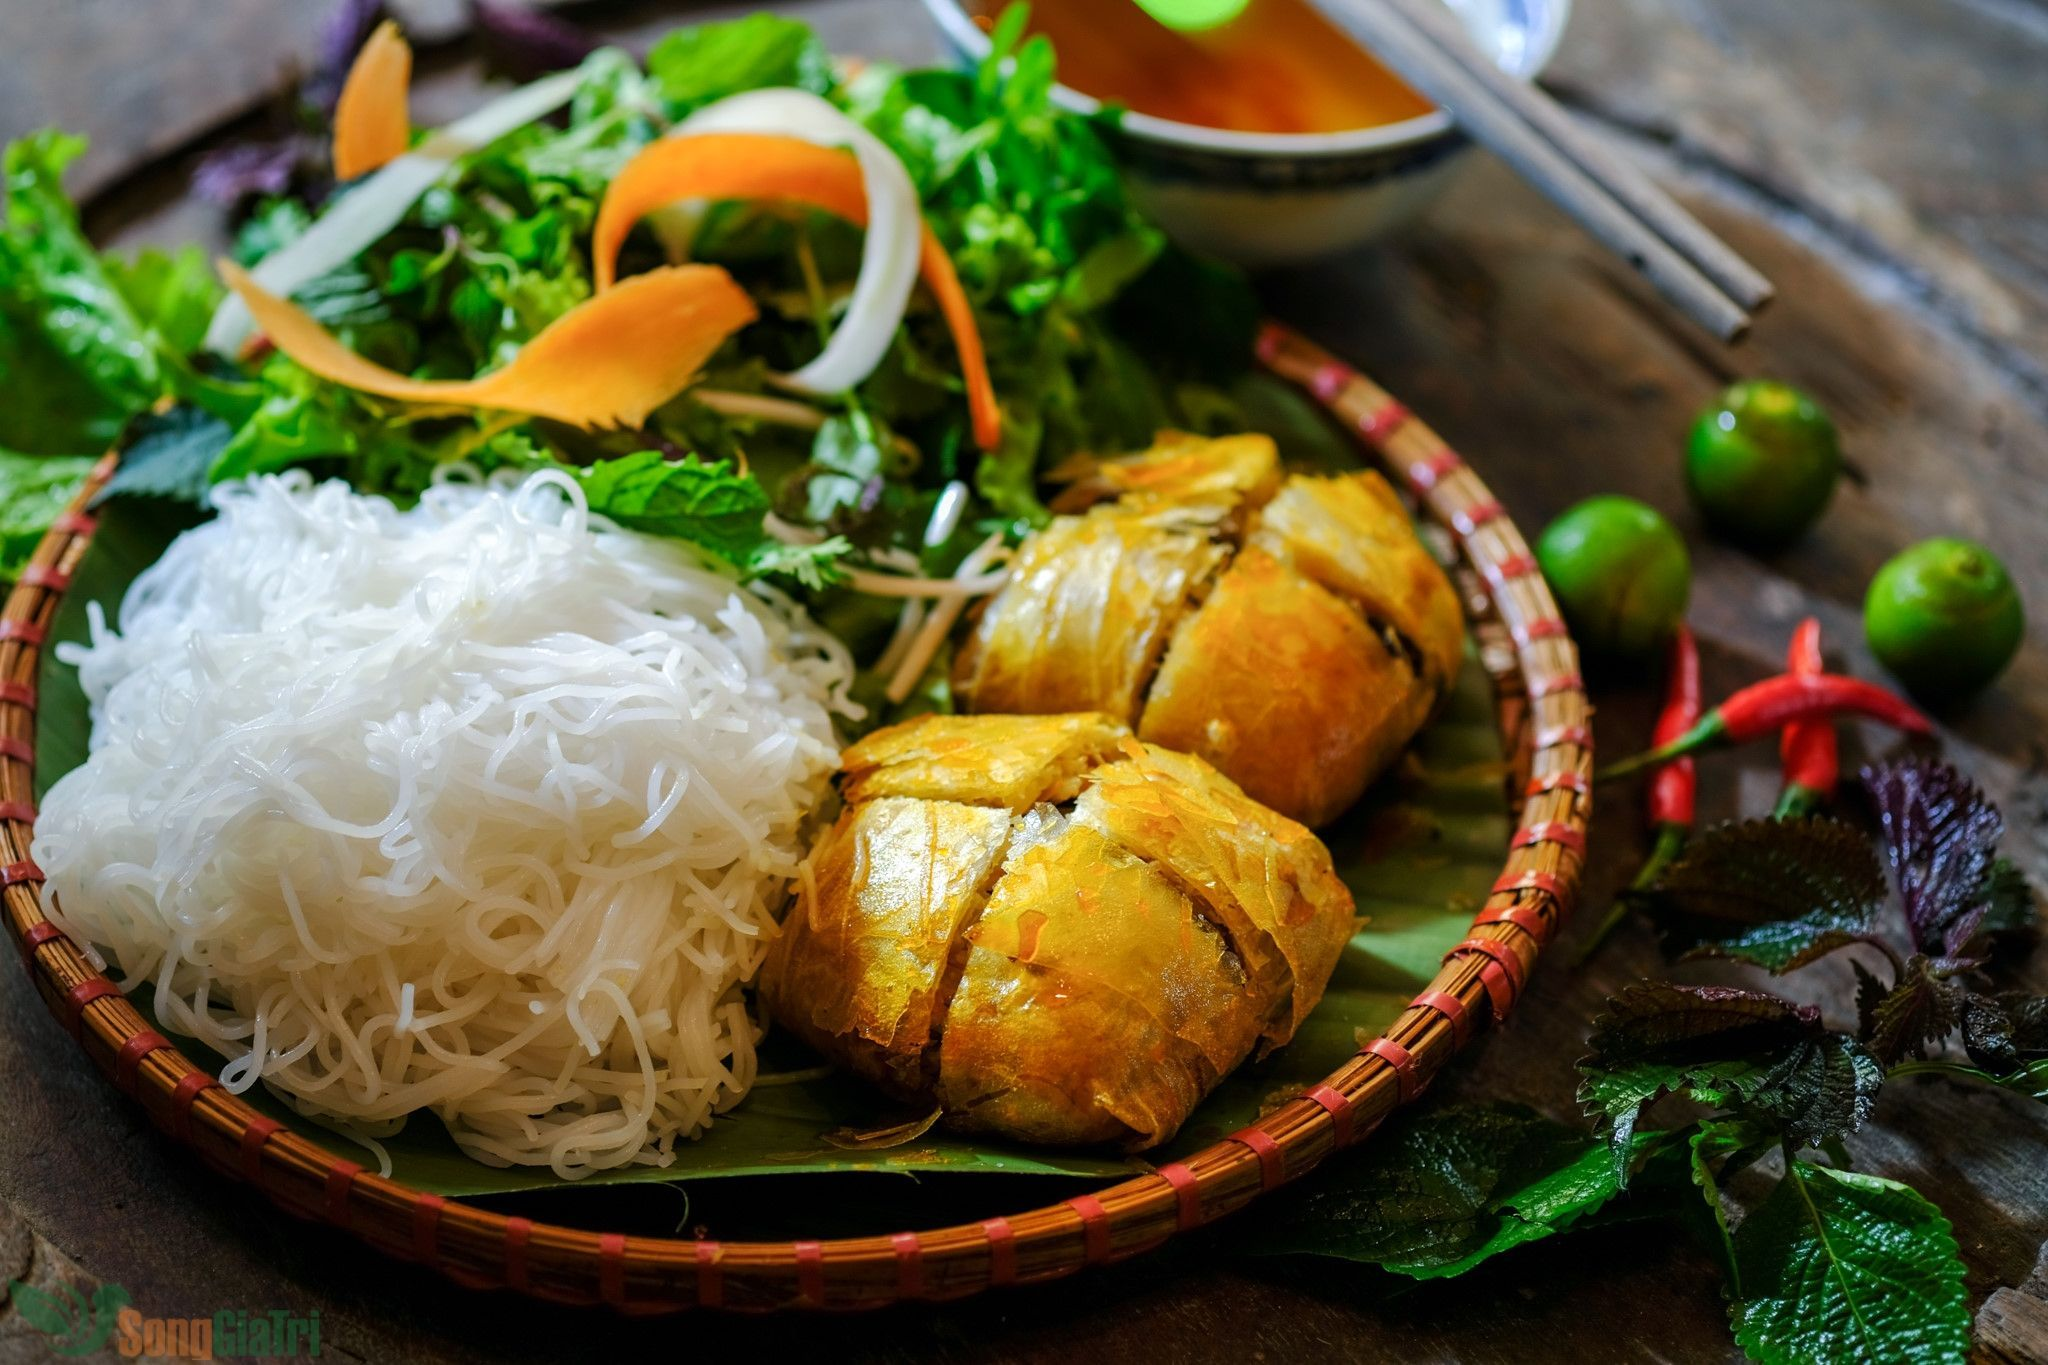 Coming to Hai Phong to enjoy the unique crab spring rolls